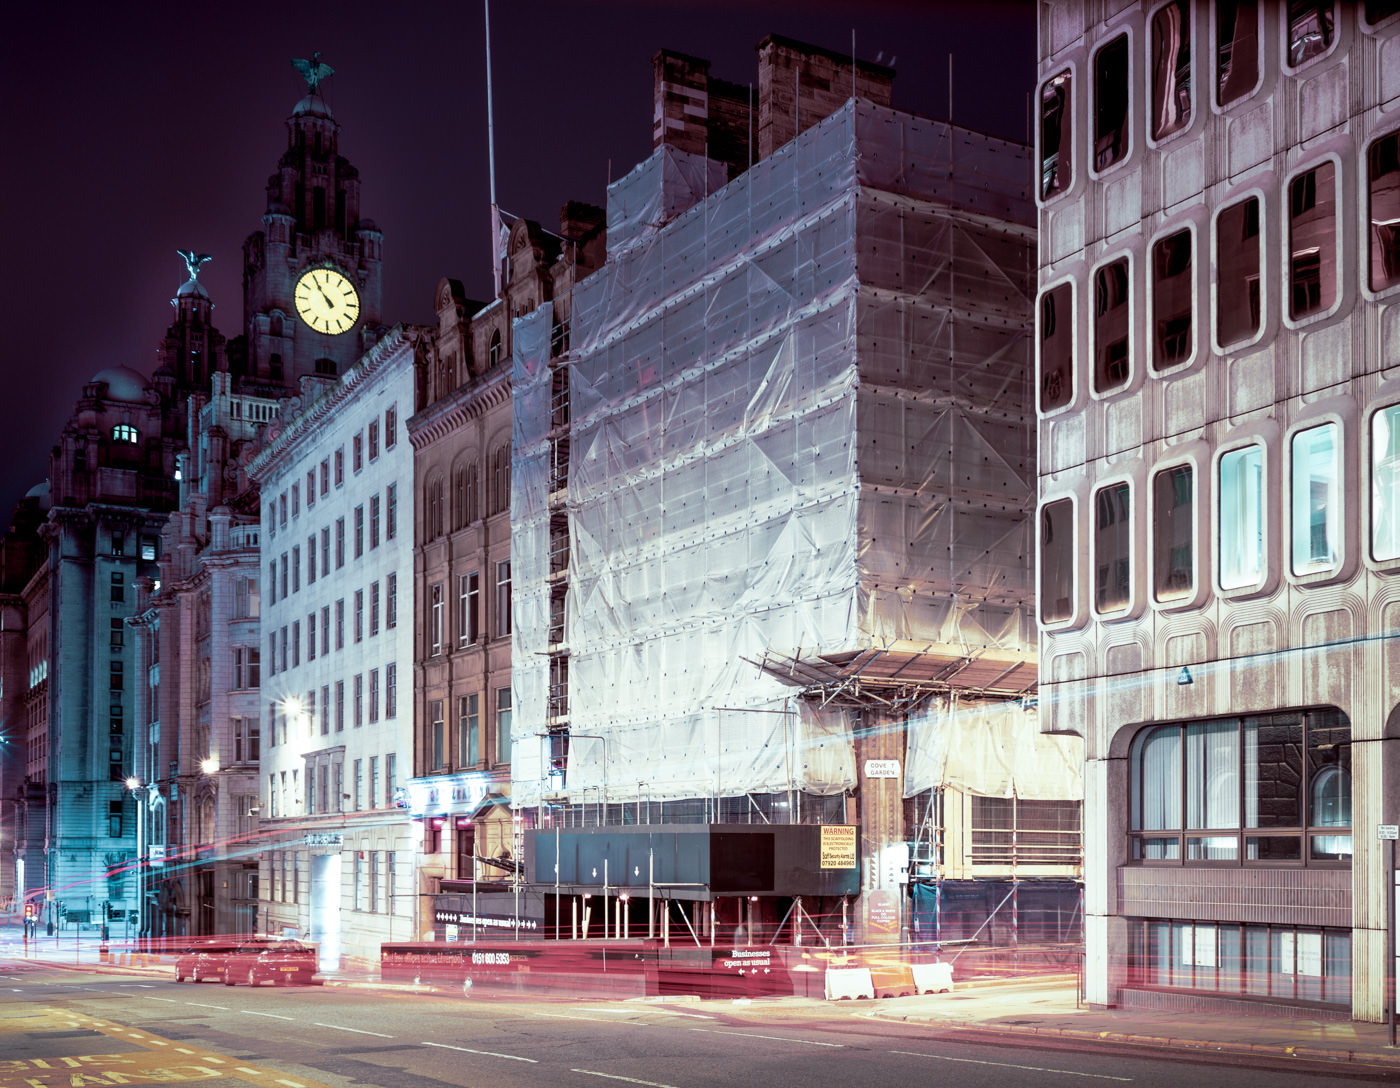 """""""Water Street and Covent Garden, Liverpool"""" from the series Nylon Chrysalis, by William Mokrynski"""